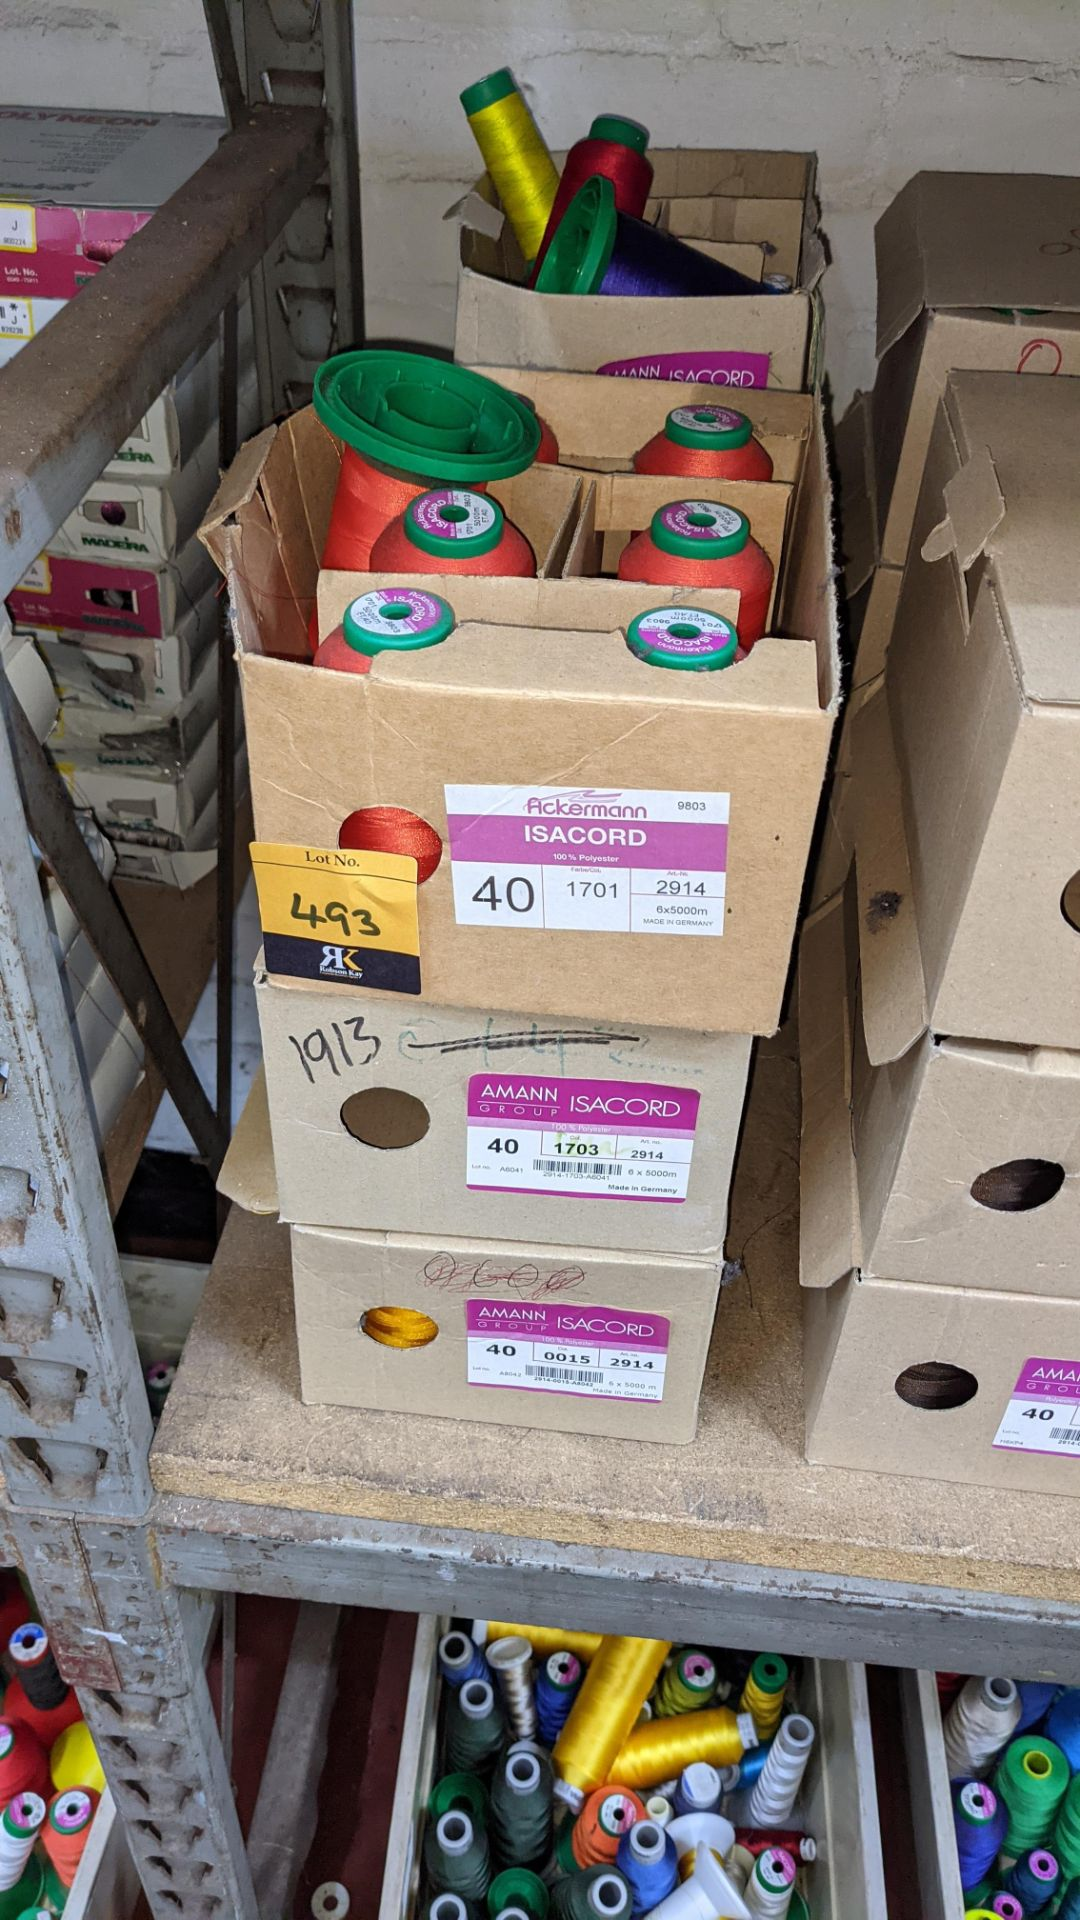 6 boxes of Ackermann & Amann Group Isacord polyester No. 40 embroidery thread